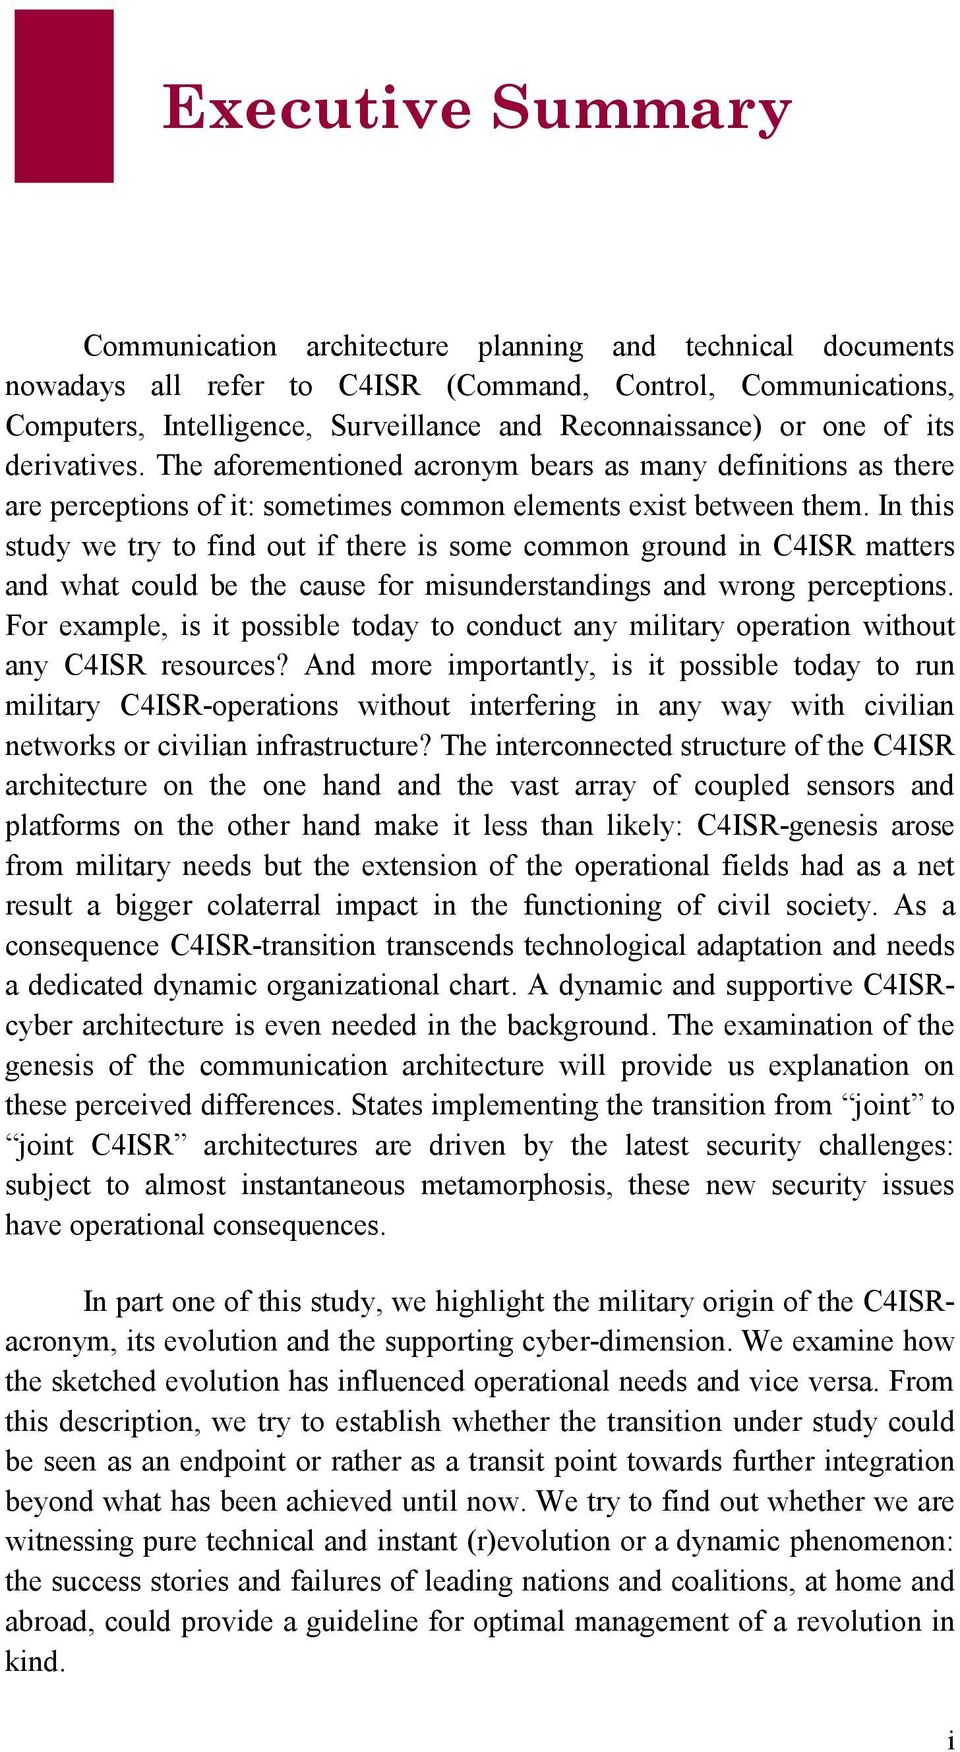 In this study we try to find out if there is some common ground in C4ISR matters and what could be the cause for misunderstandings and wrong perceptions.